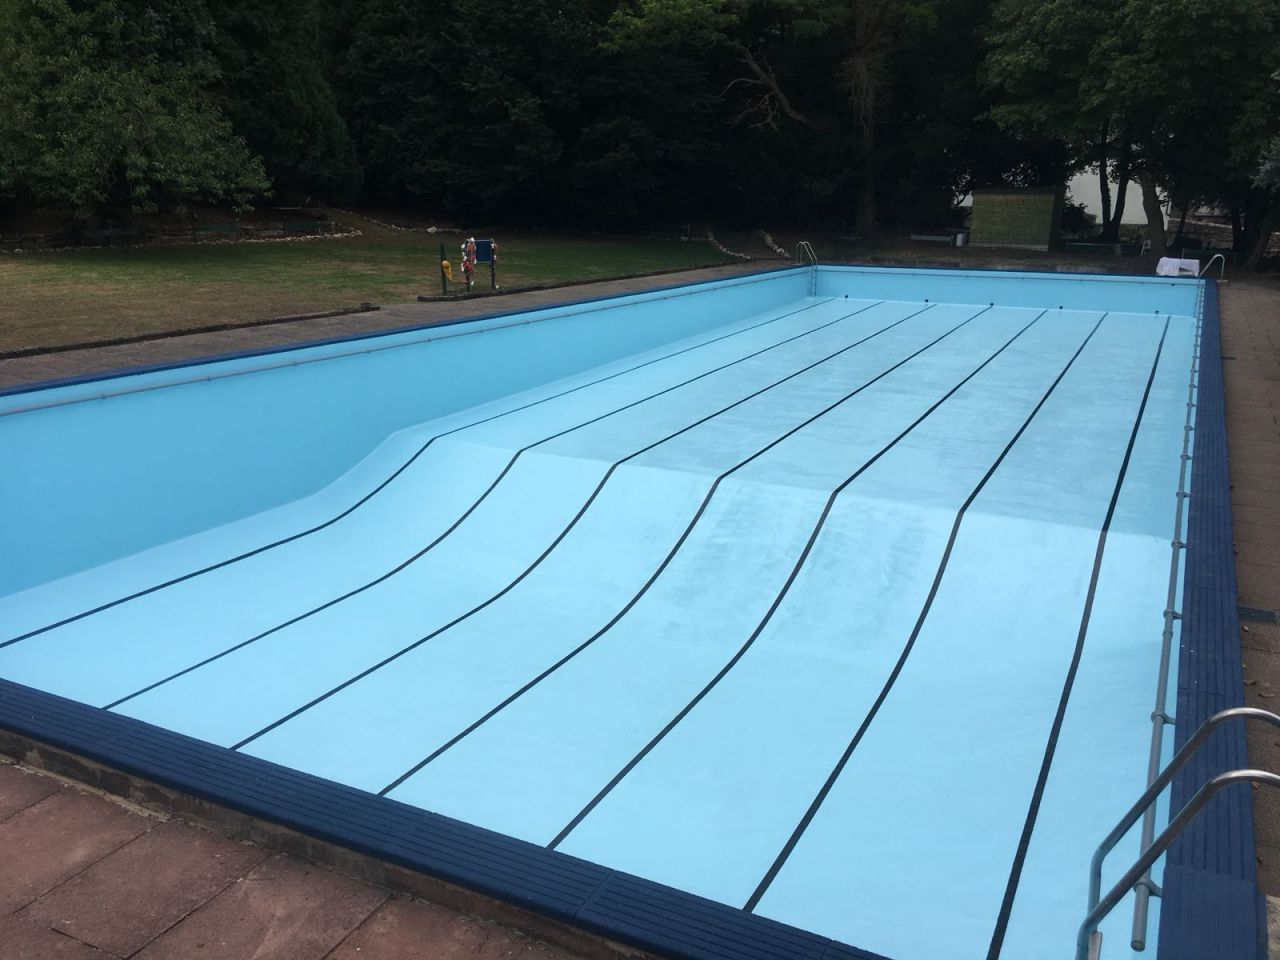 Chlor Rubber outdoor pool paint